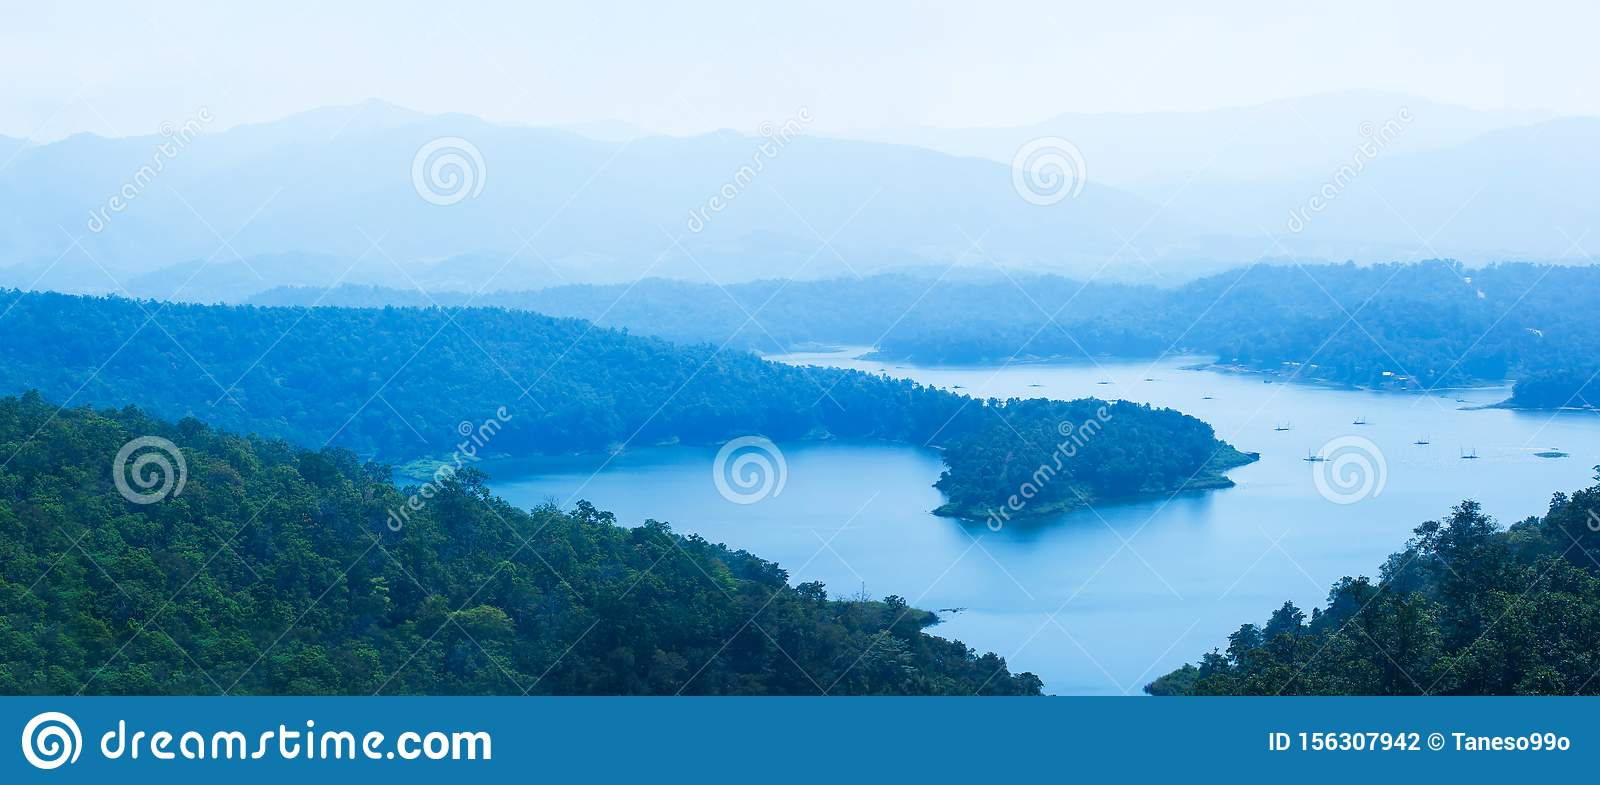 Aerial view panorama of the blue lake in a mountain range